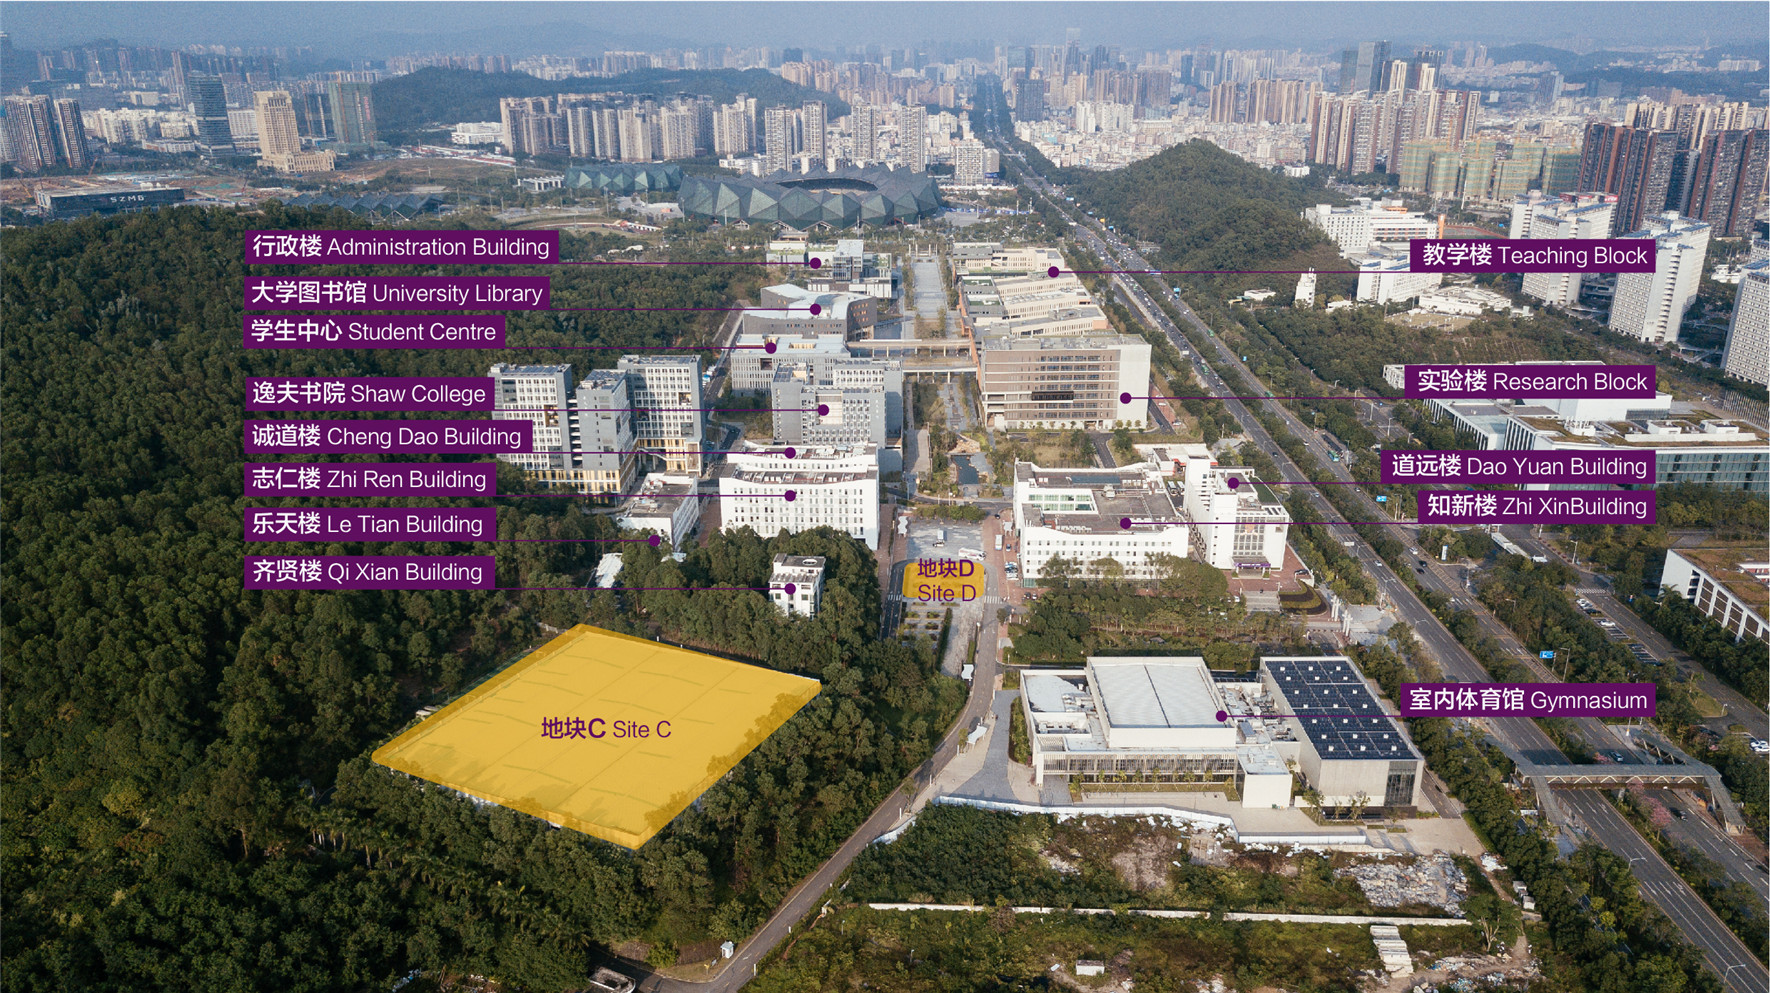 校园下园现状与地块C、D、E  Lower Campus Current Condition and Site C, D, E  ©有方